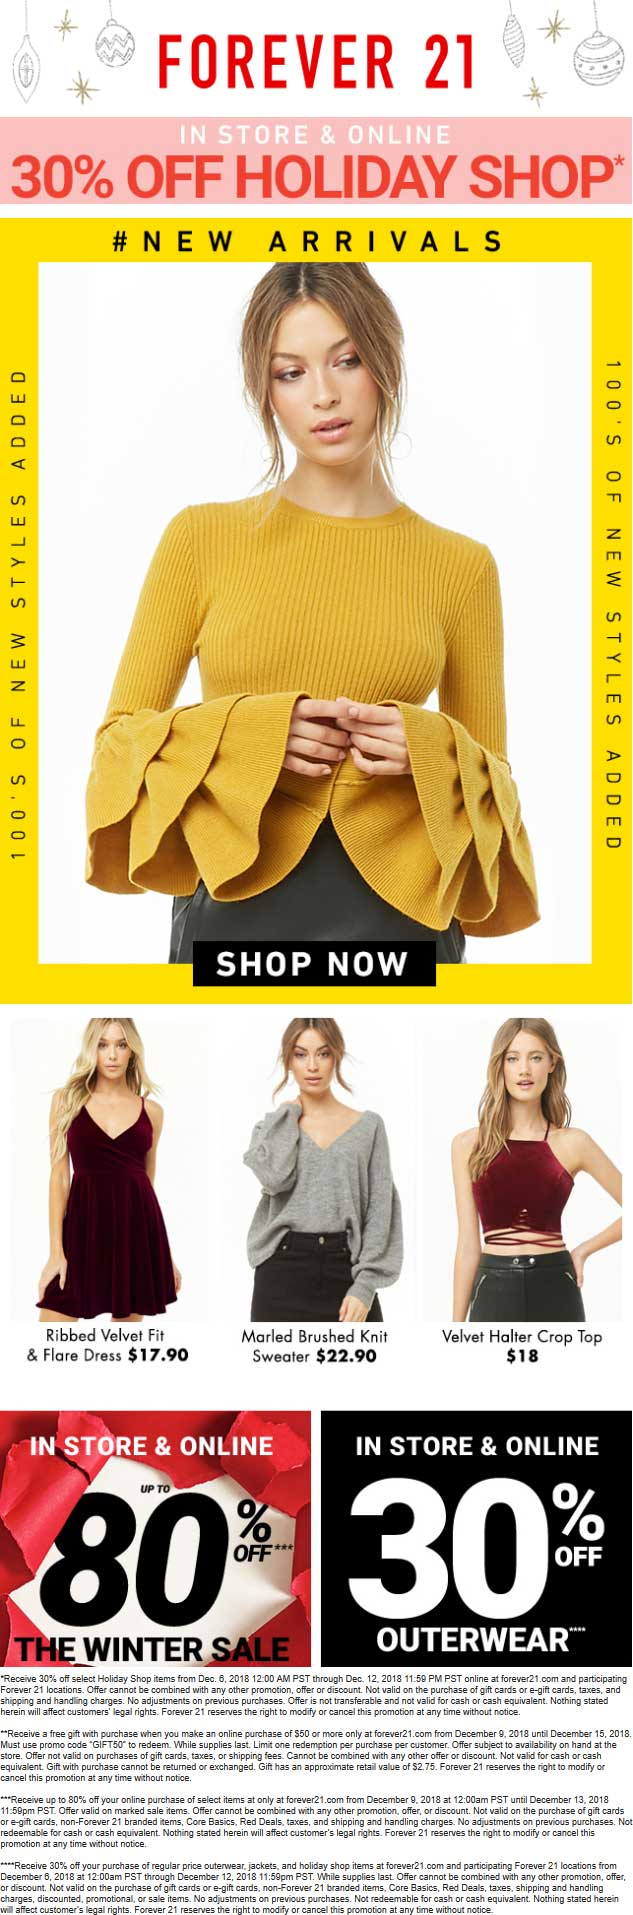 Forever 21 Coupon November 2019 30% off at Forever 21, ditto online